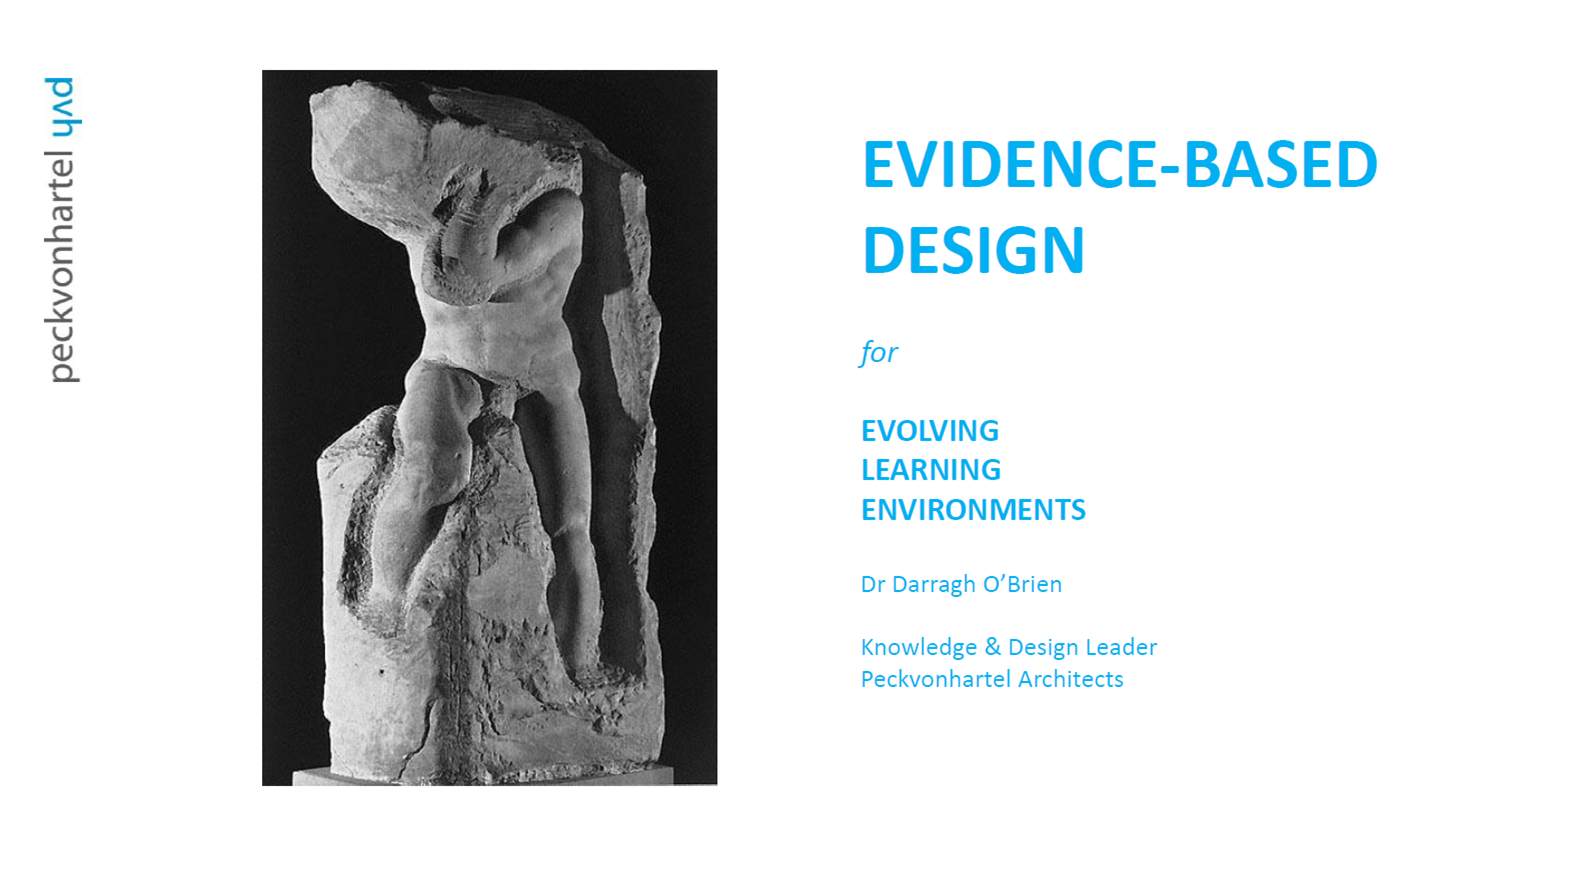 Evidence-based design for evolving learning environments